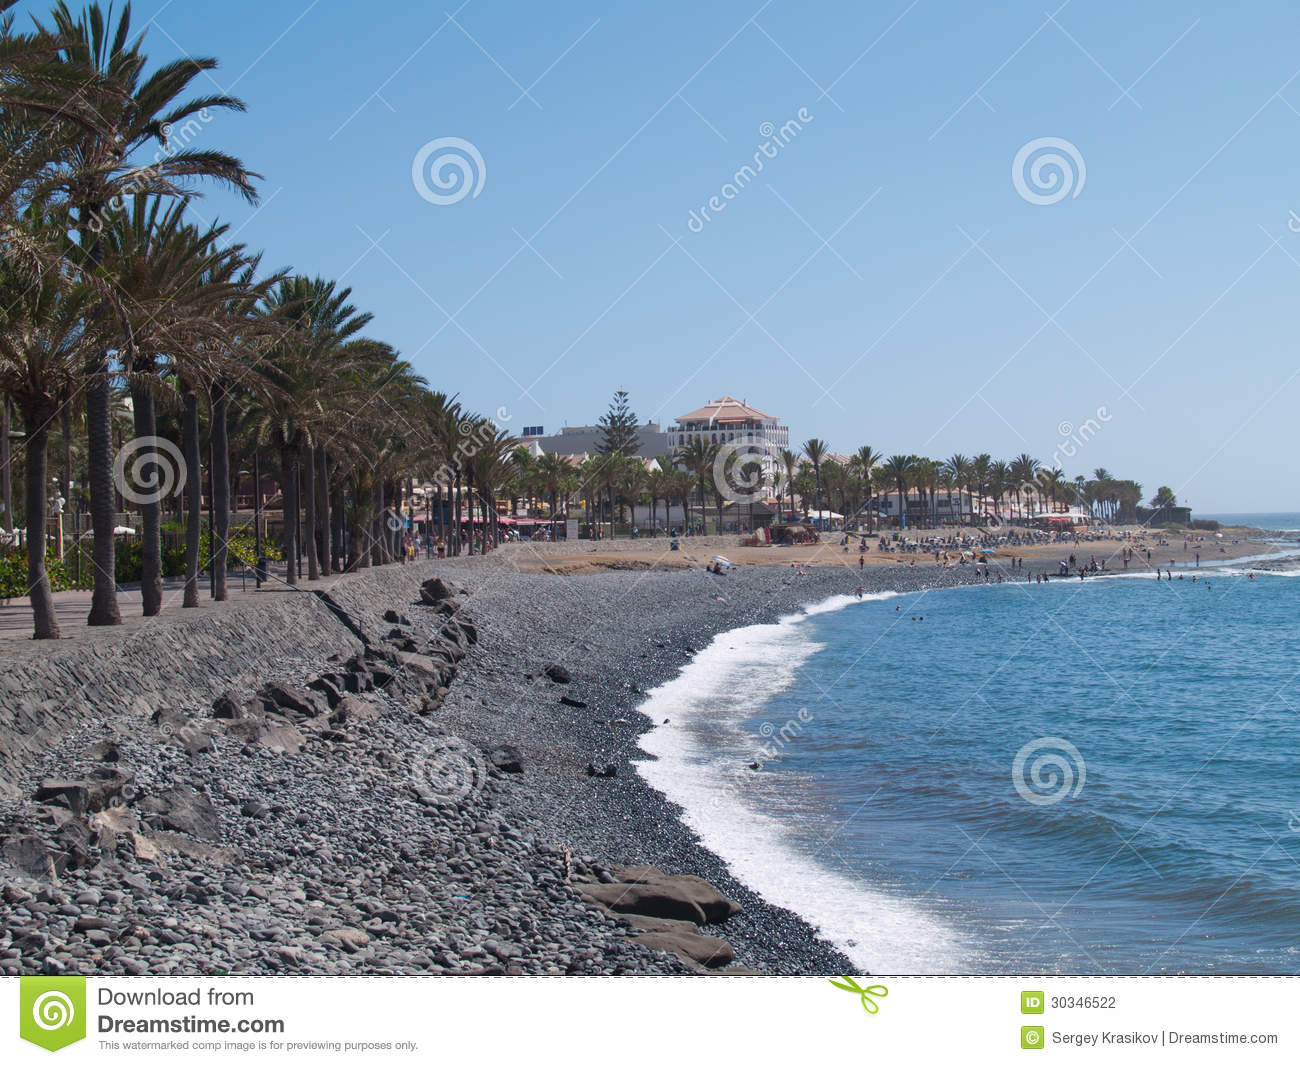 Tenerife Spain  city photos gallery : Beaches Of Tenerife, Spain Stock Photography Image: 30346522